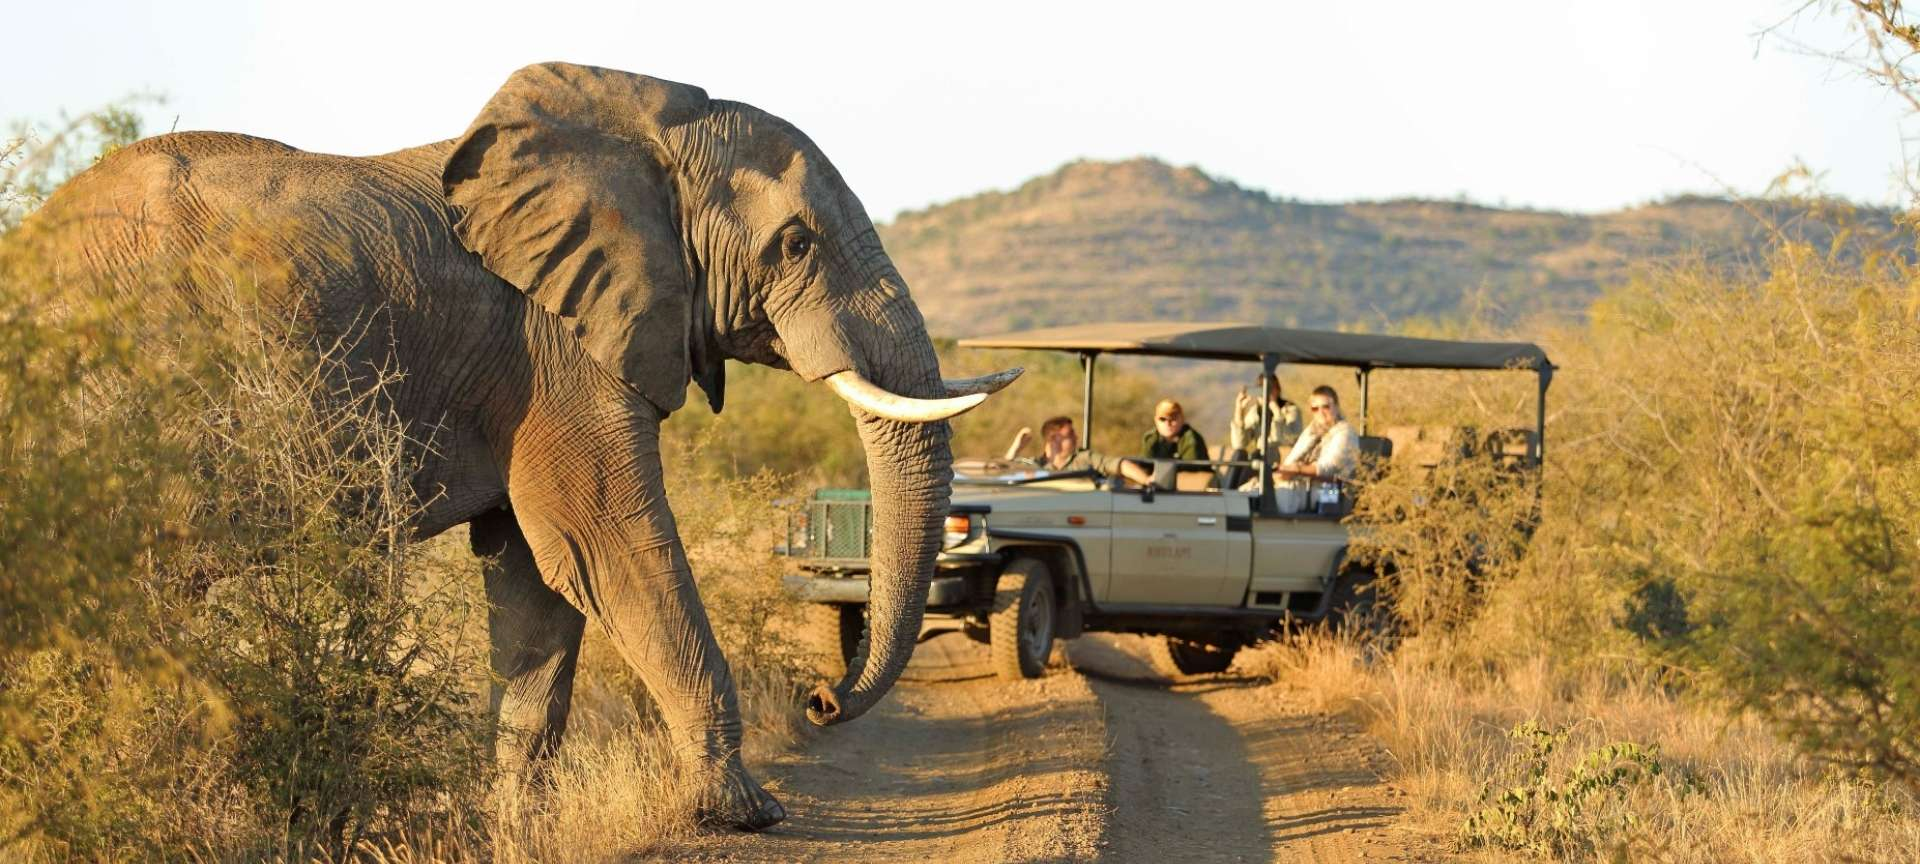 Ensure your safari guide is aware of any photo opportunities along the route